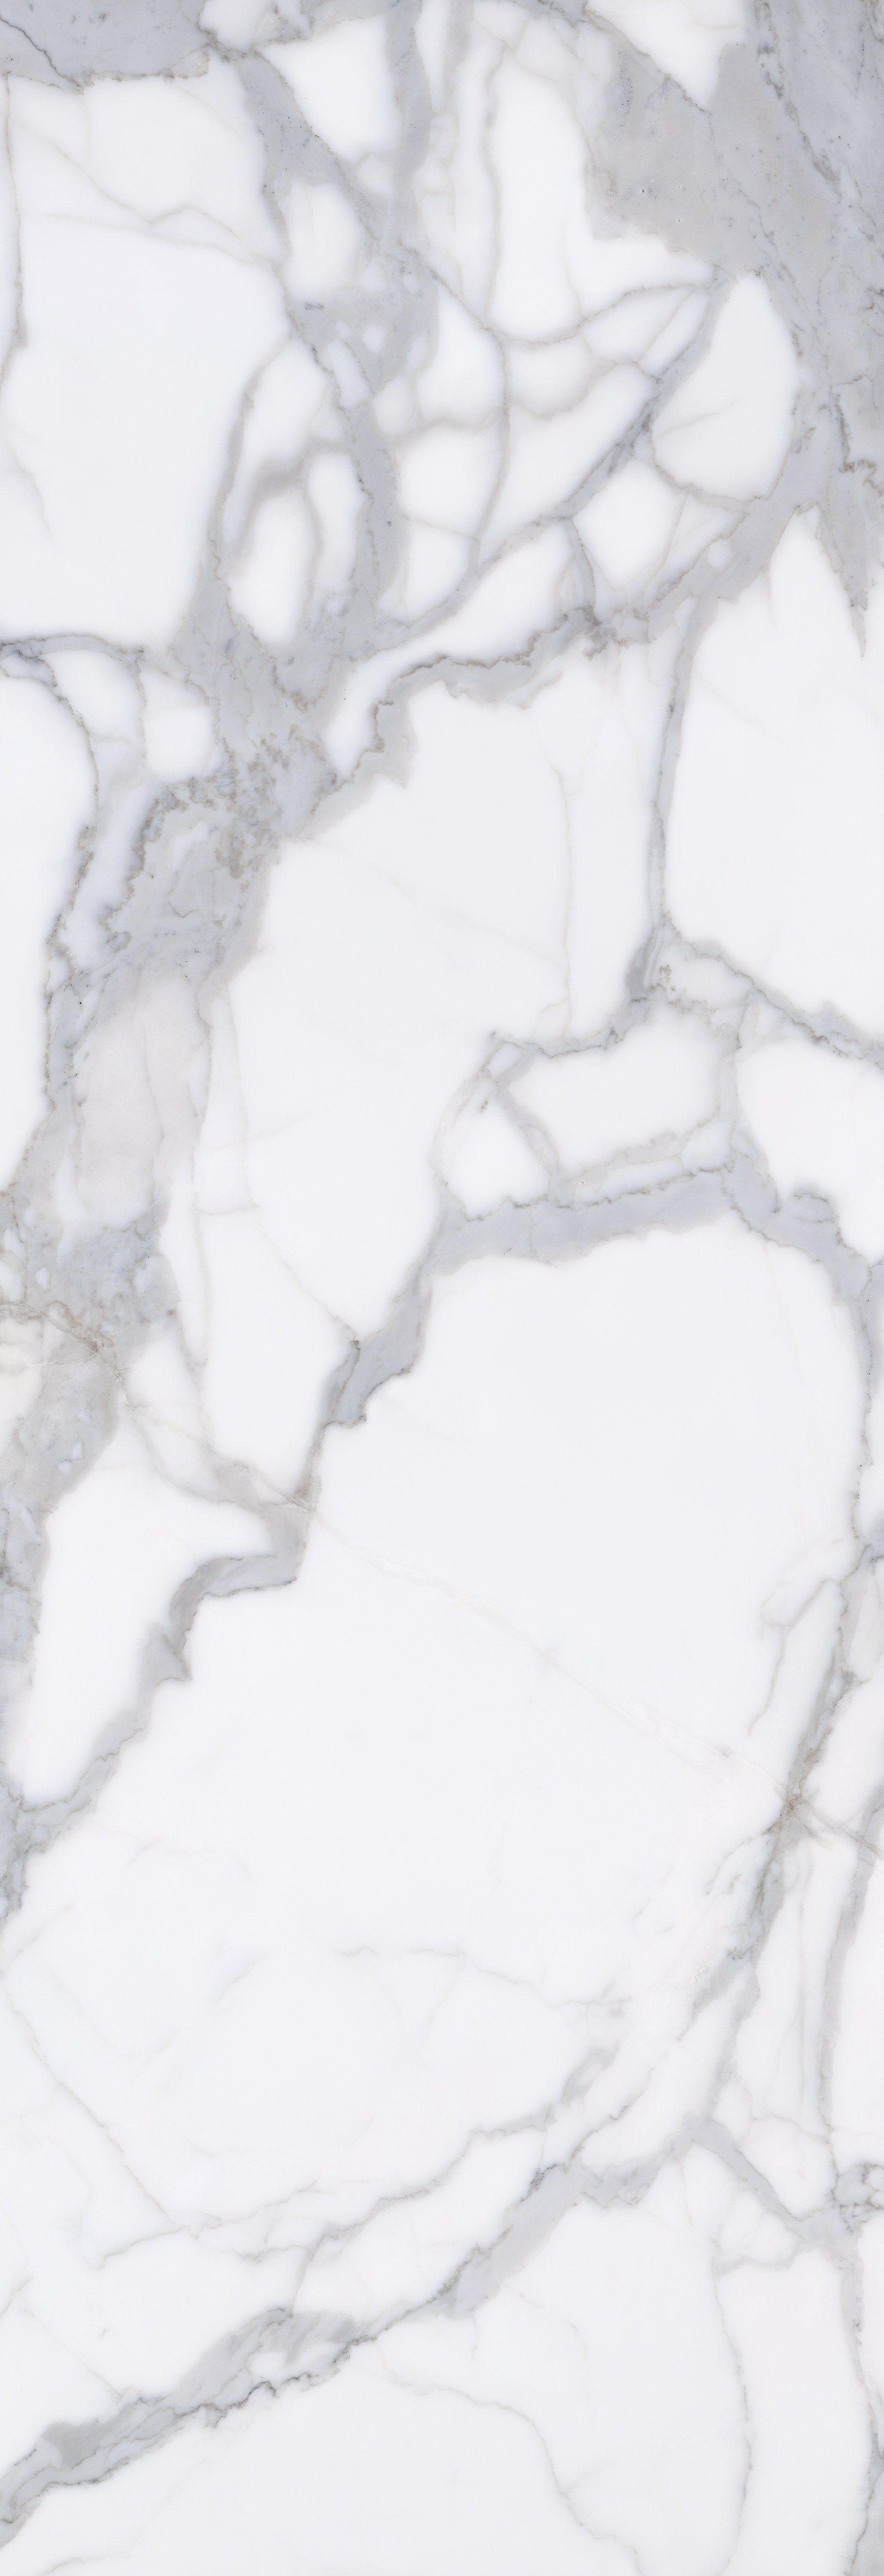 Ultra thin porcelain stoneware wallfloor tiles with stone effect ultra thin porcelain stoneware wallfloor tiles with stone effect kalos bianco stone collection by dailygadgetfo Gallery